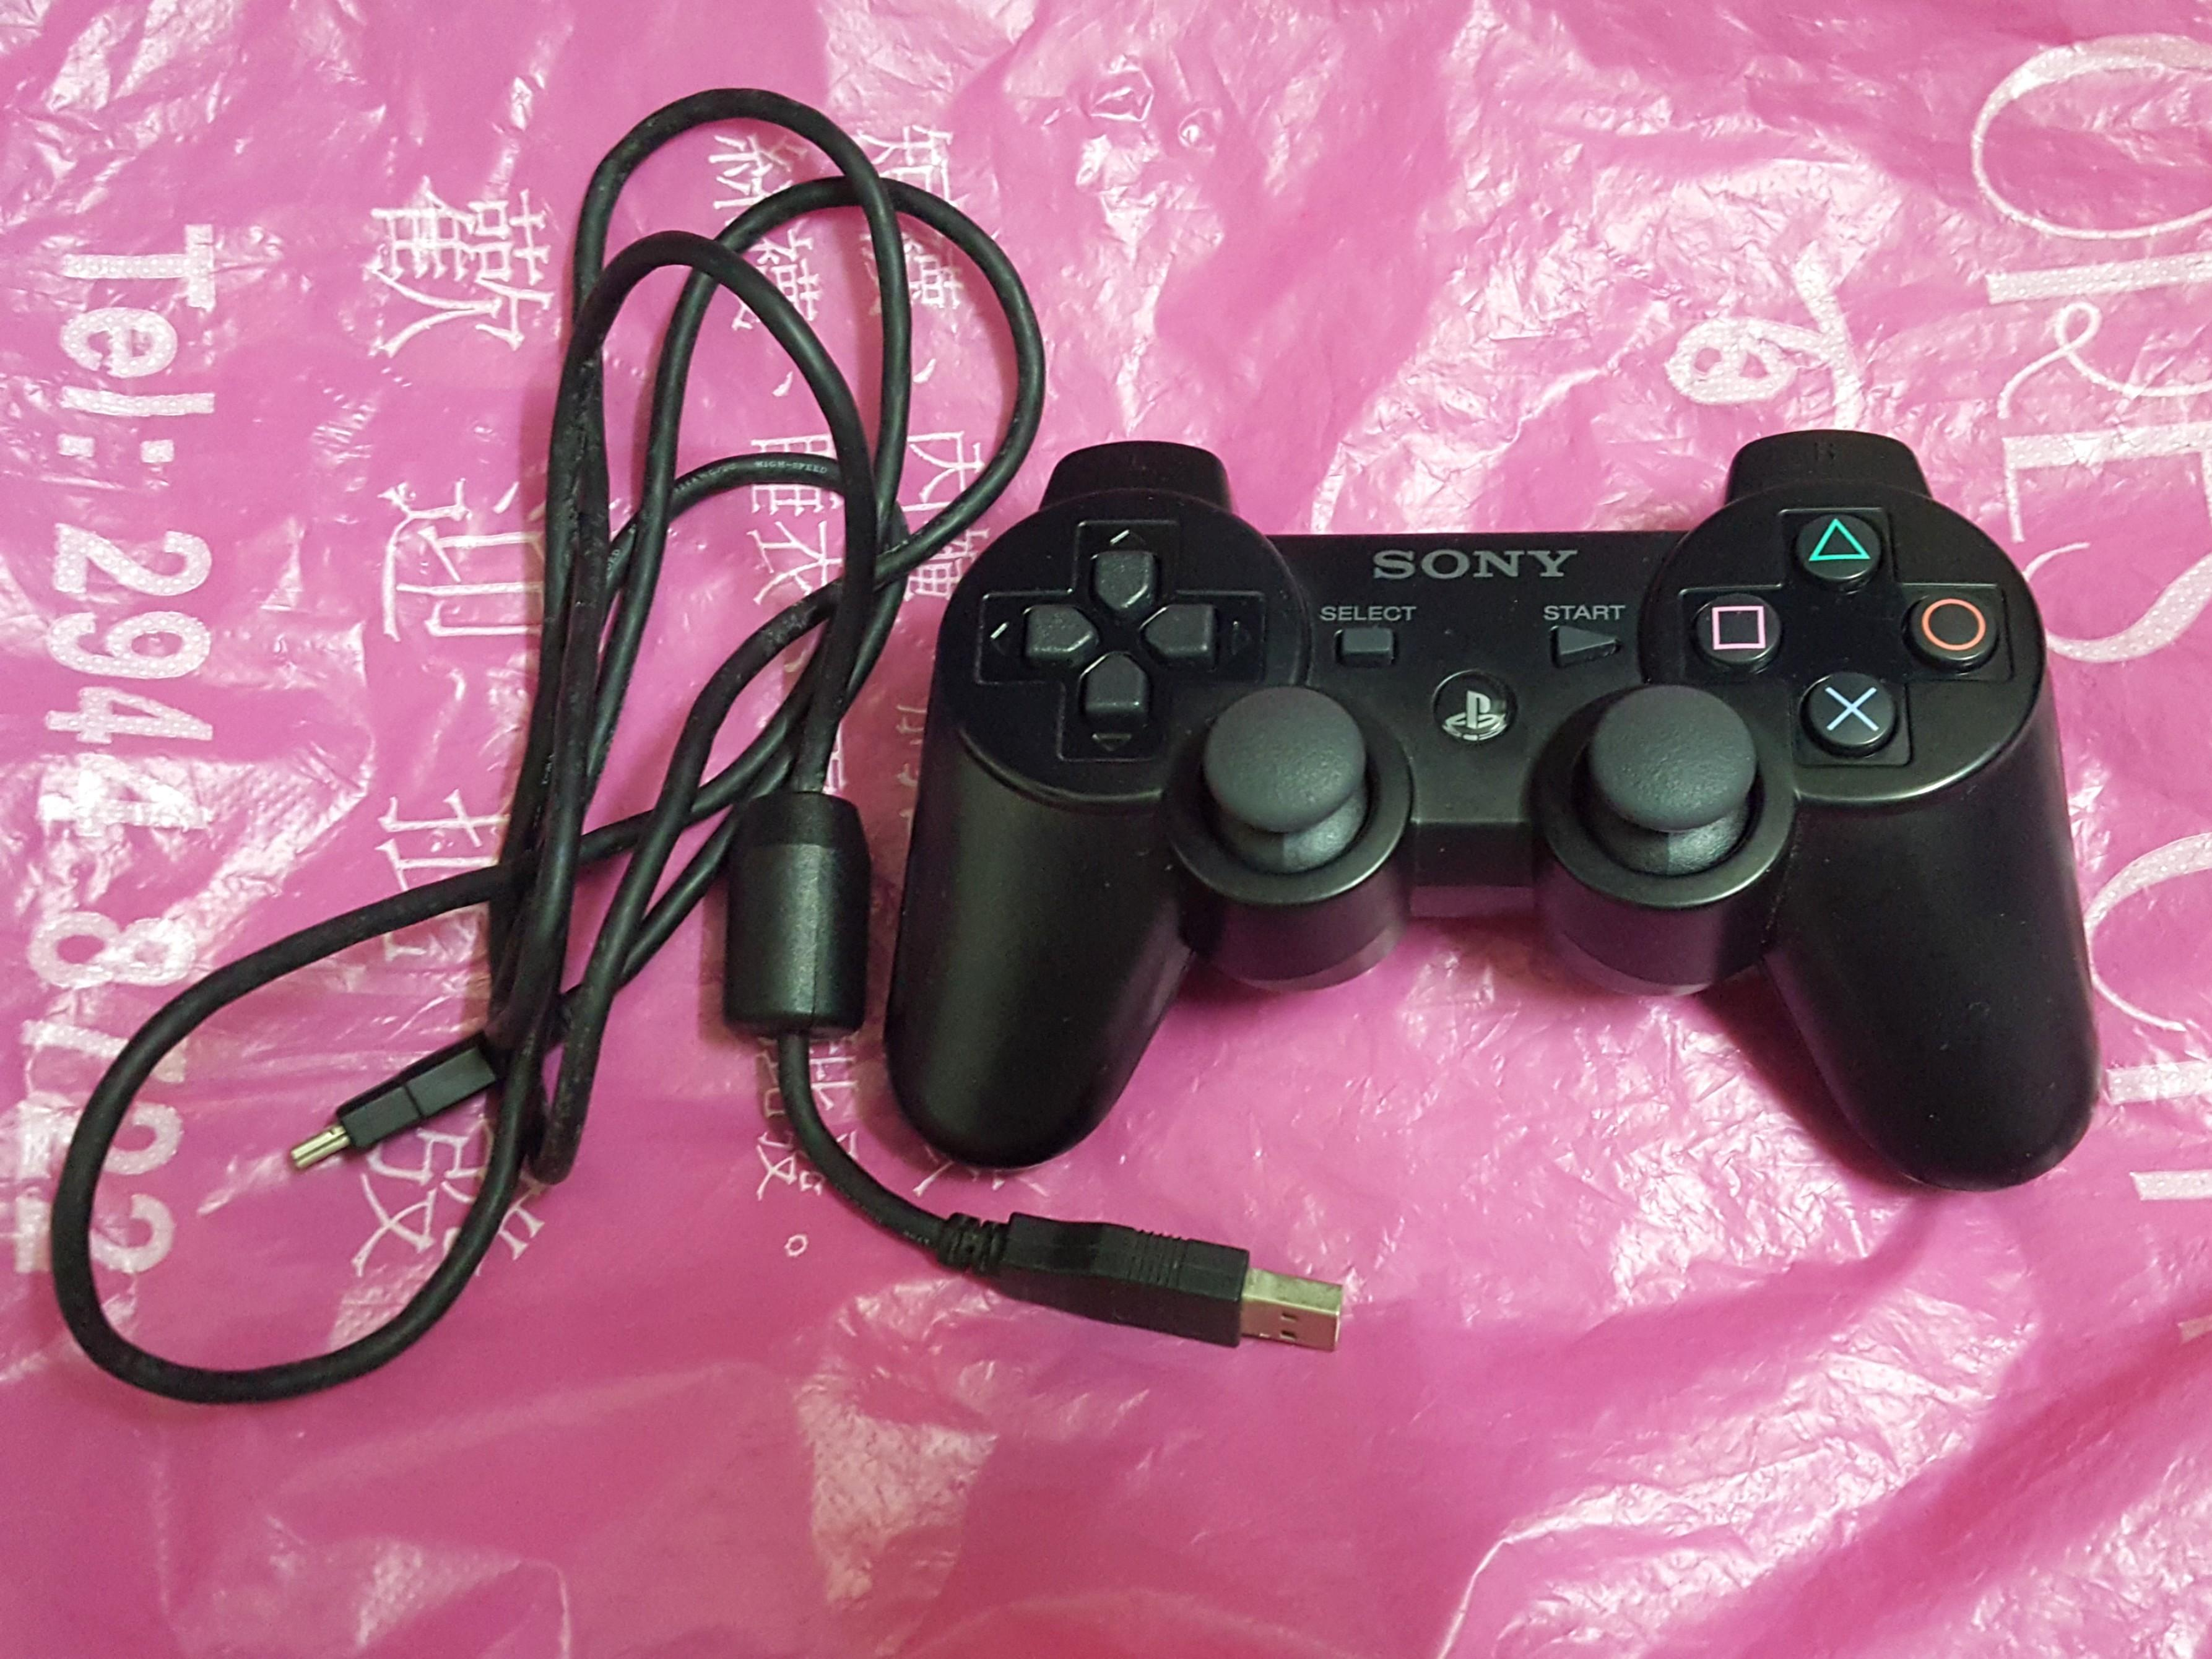 SONY PS3 Controller With The USB Charger Cable For The Controller!. 100% Work.